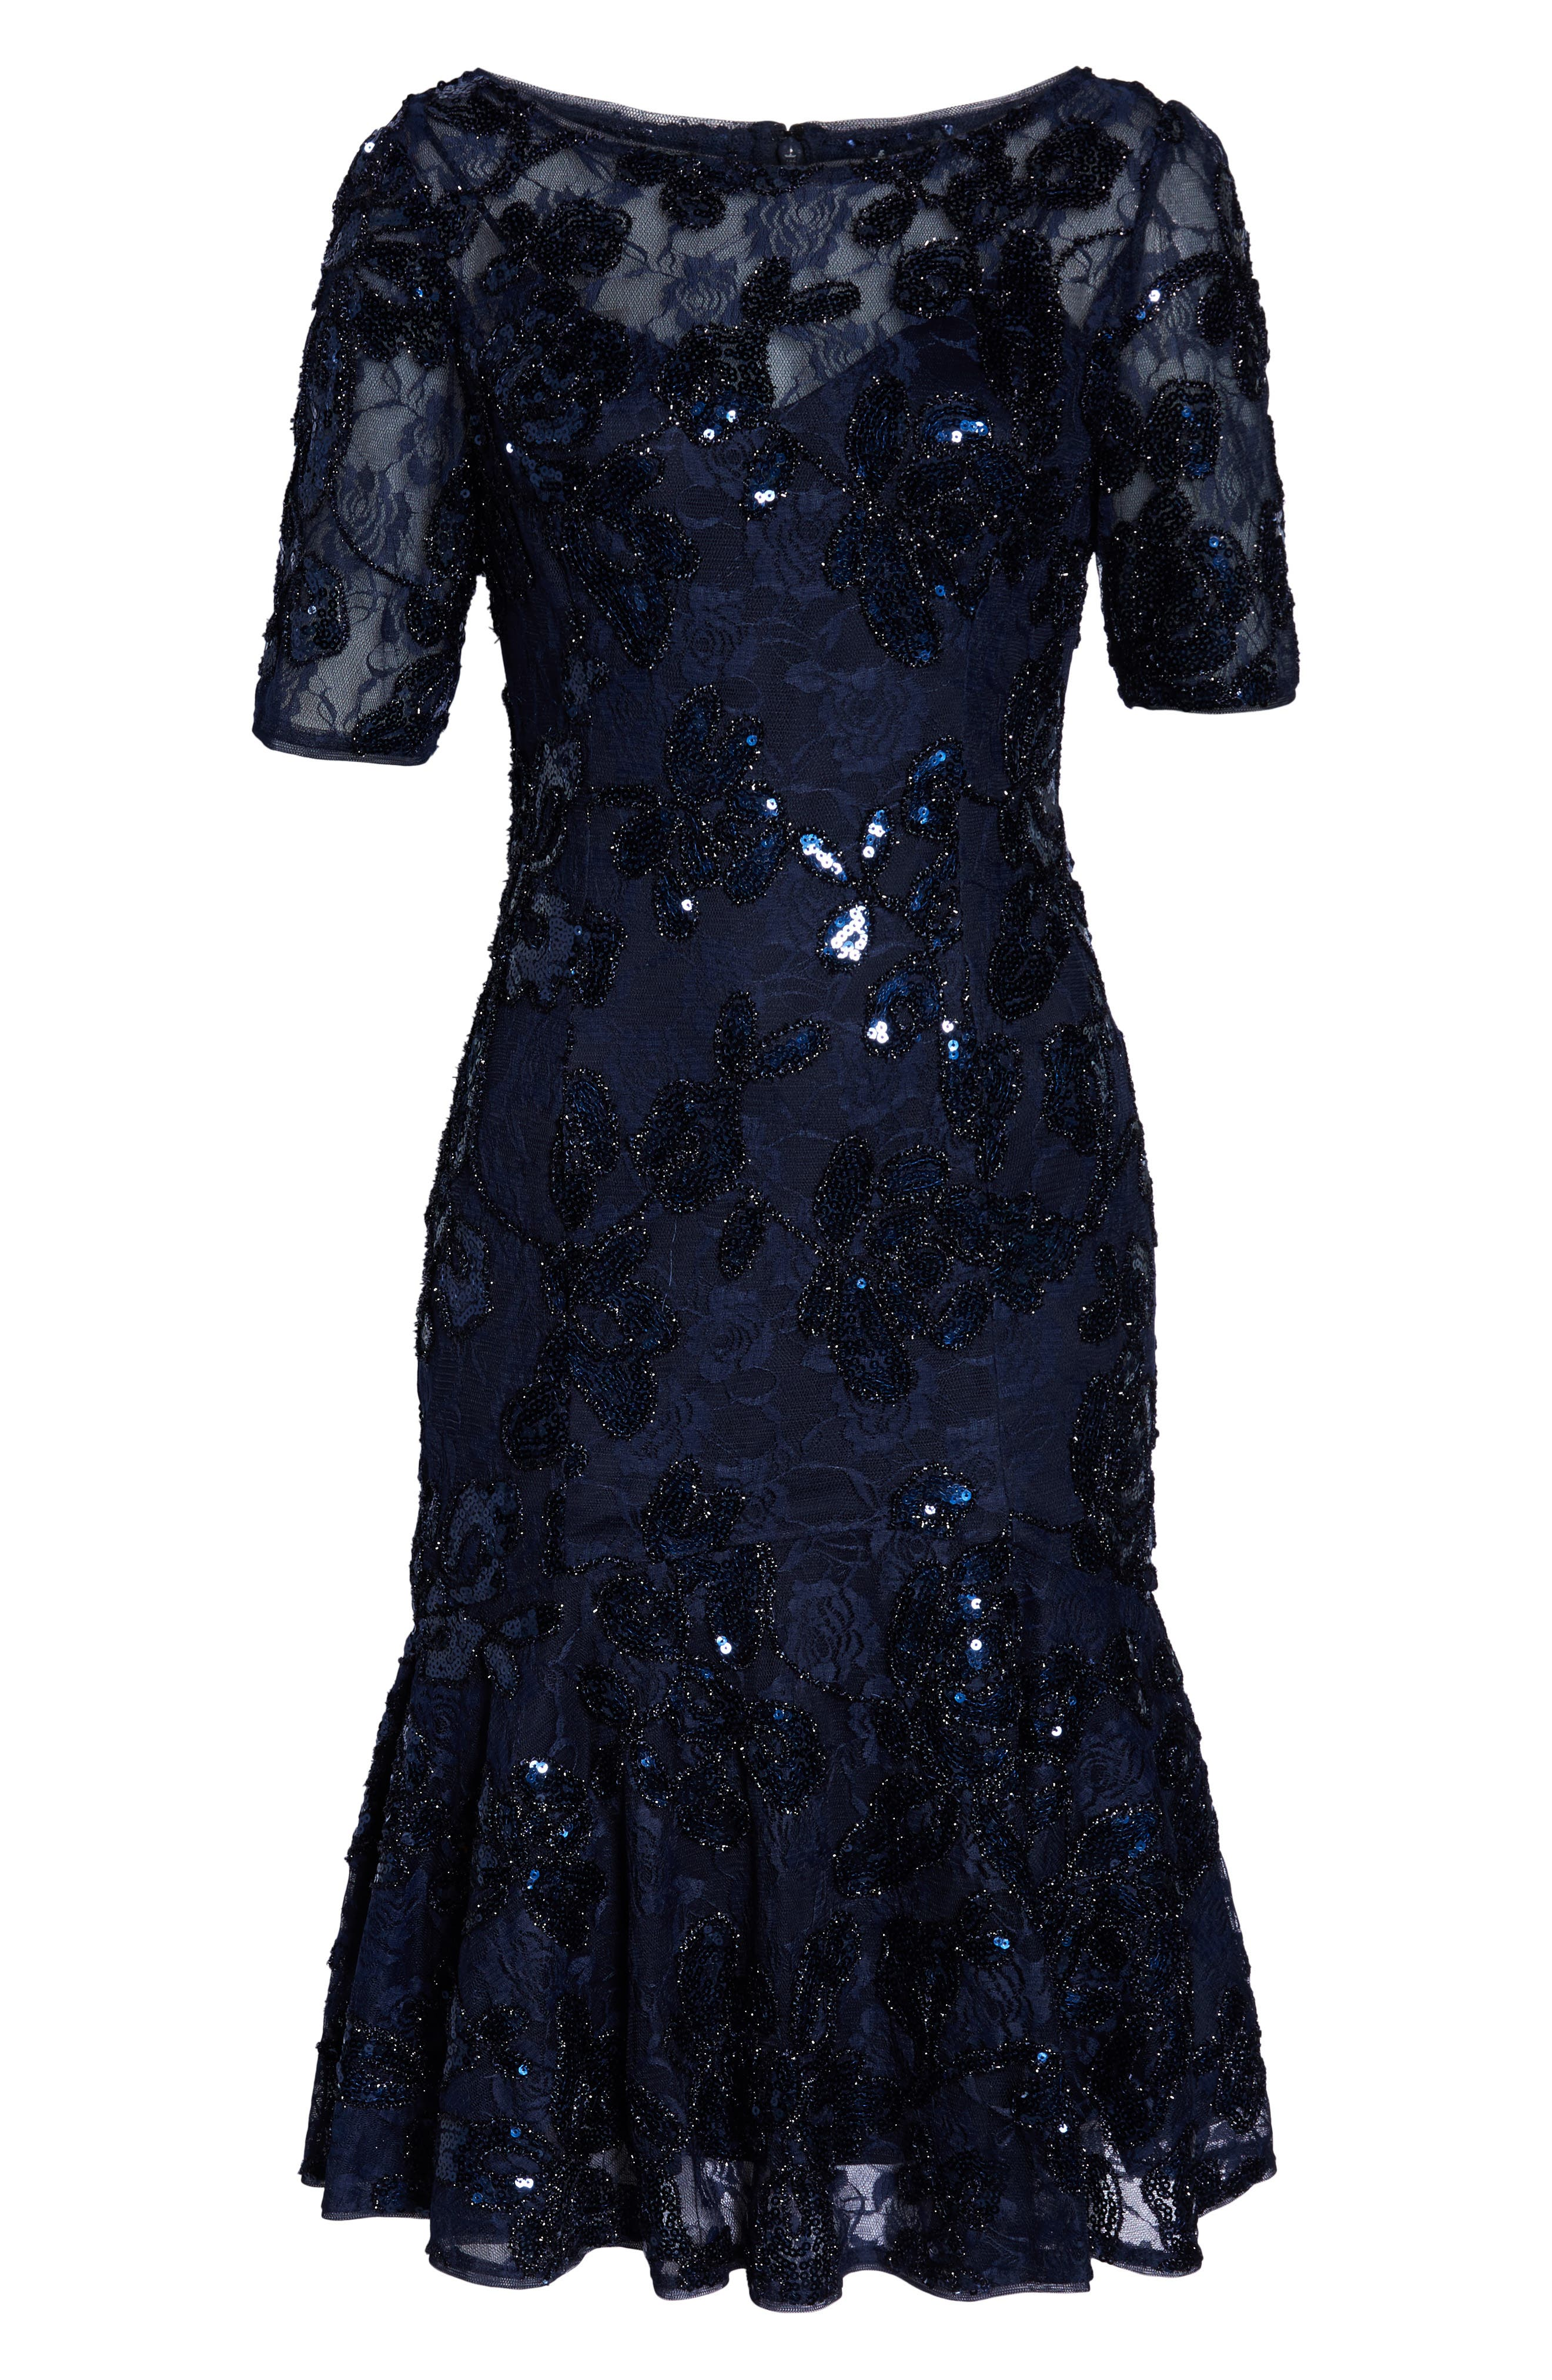 ADRIANNA PAPELL,                             Sequin Embellished Dress,                             Alternate thumbnail 6, color,                             410